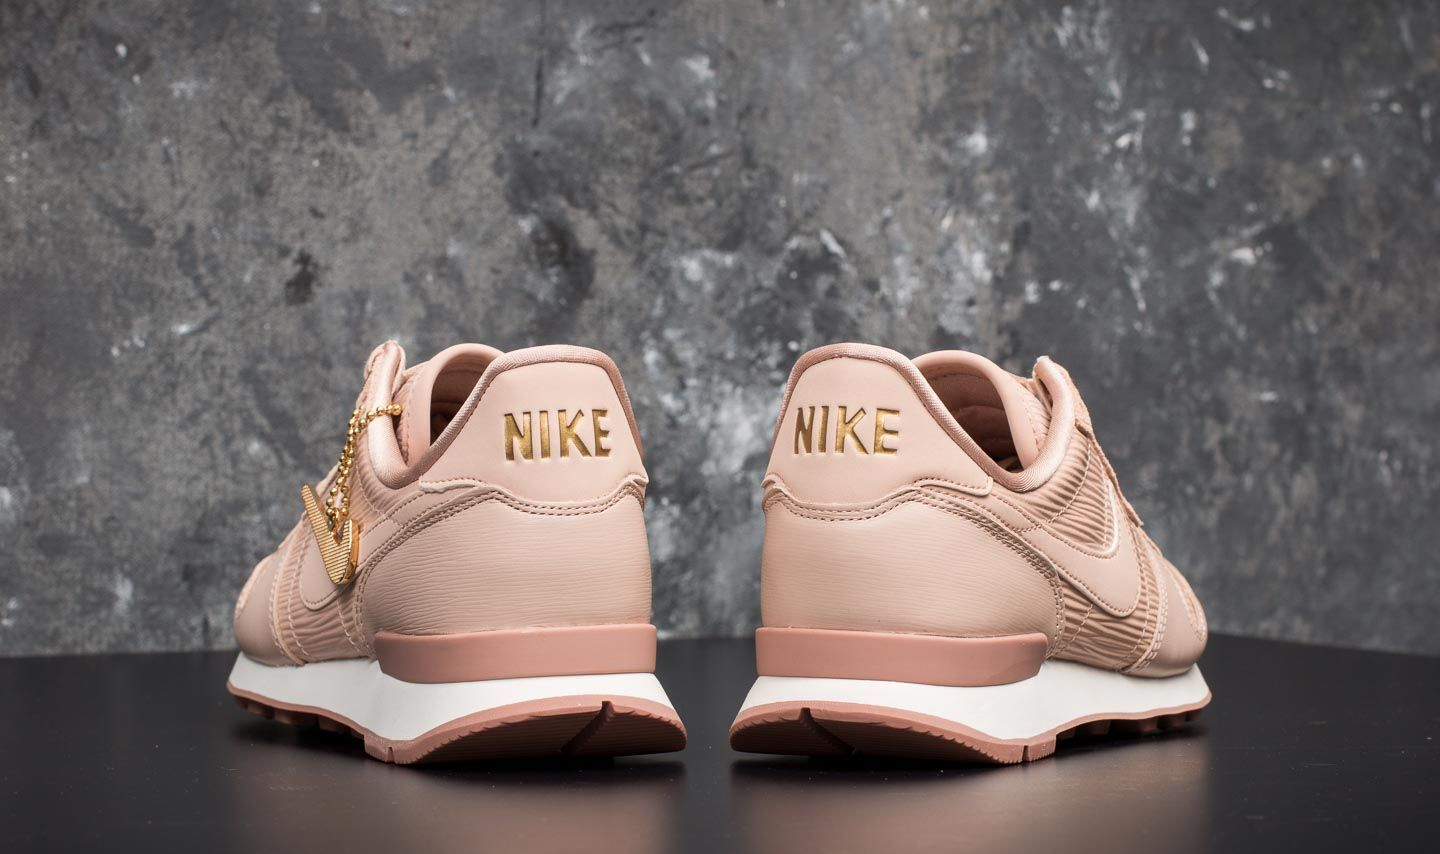 buy popular 5fc30 ff7f8 ... get nike w internationalist premium particle beige particle beige at a  great price 69 buy efe65